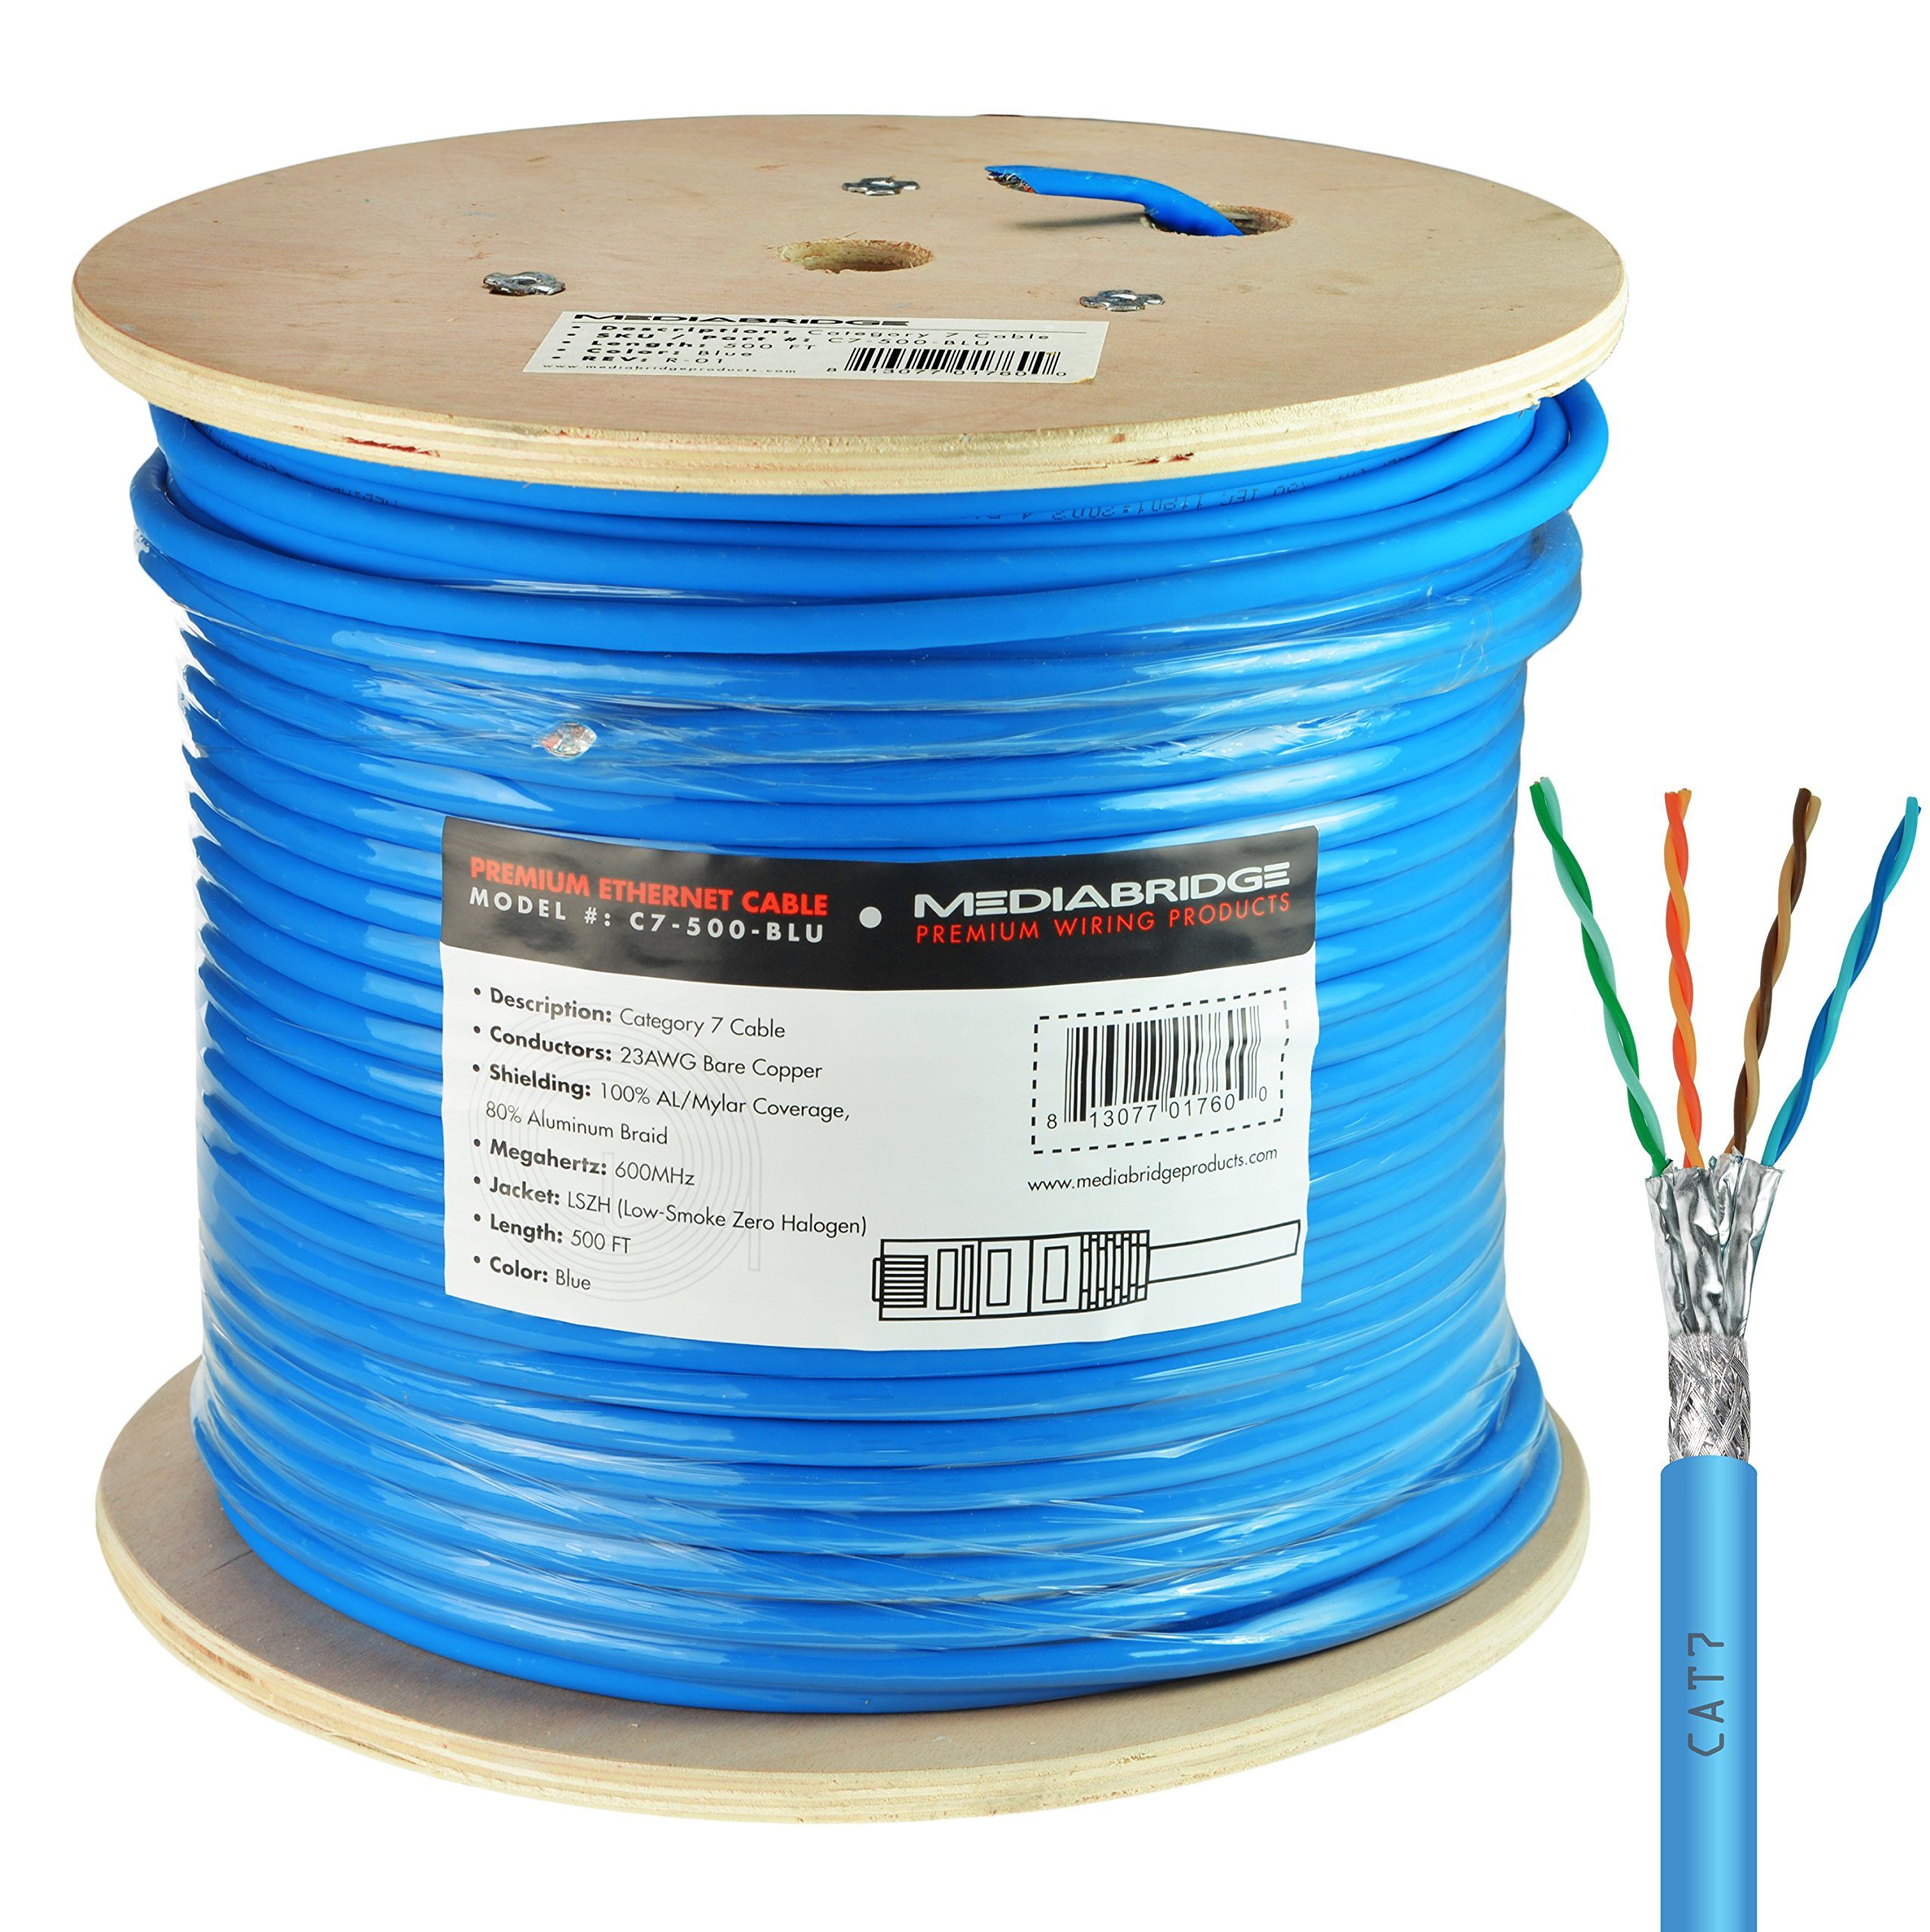 Mediabridge Solid Copper Cat7 Ethernet Cable (500 Feet, Blue) - Low-Smoke Zero Halogen Jacket (Part# C7-500-BLUE ) by Mediabridge